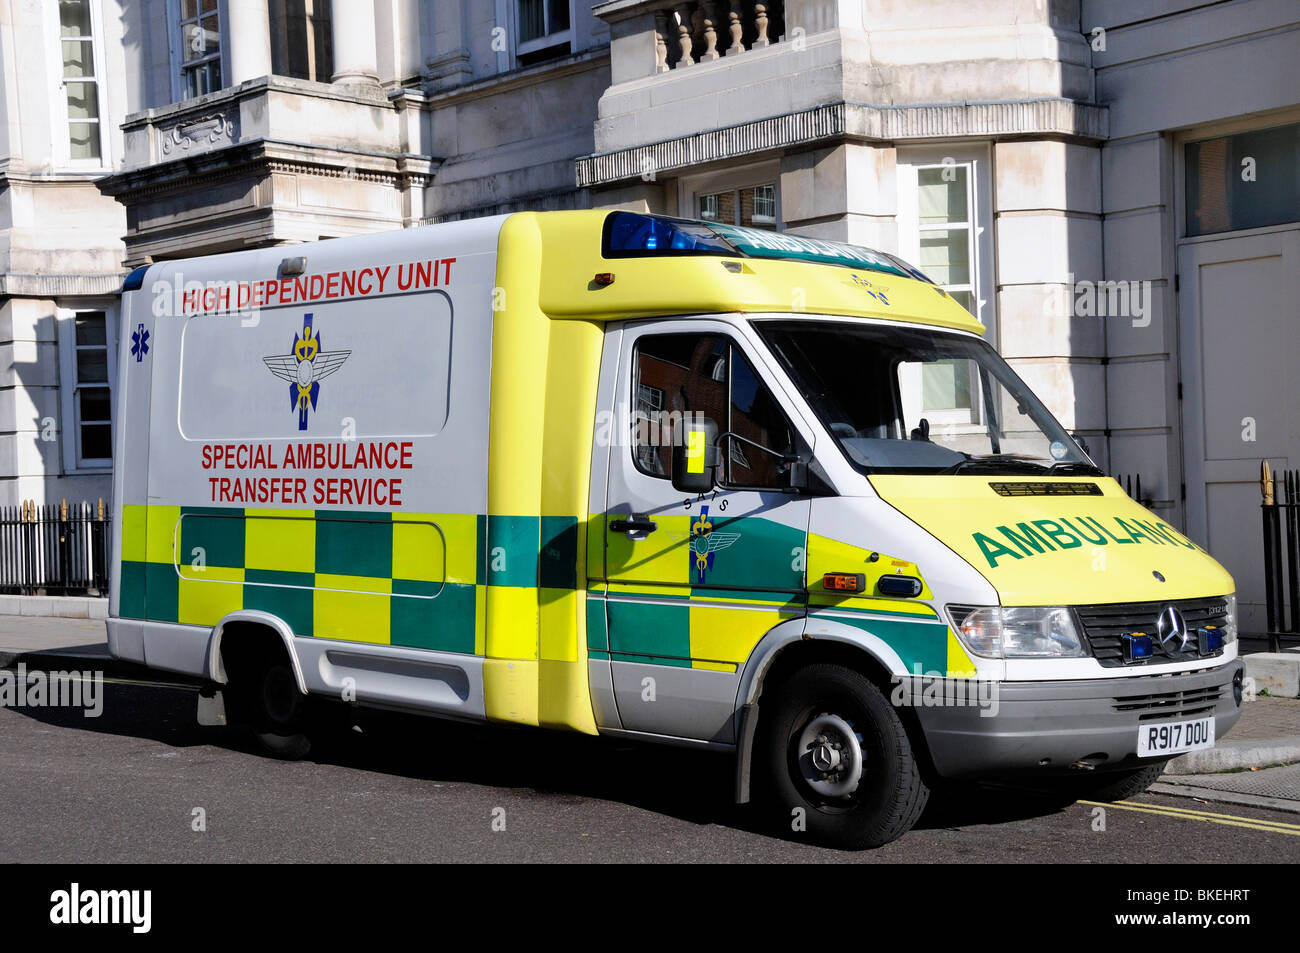 High dependency unit Special Ambulance Transfer Service outside The Heart Hospital London England UK - Stock Image